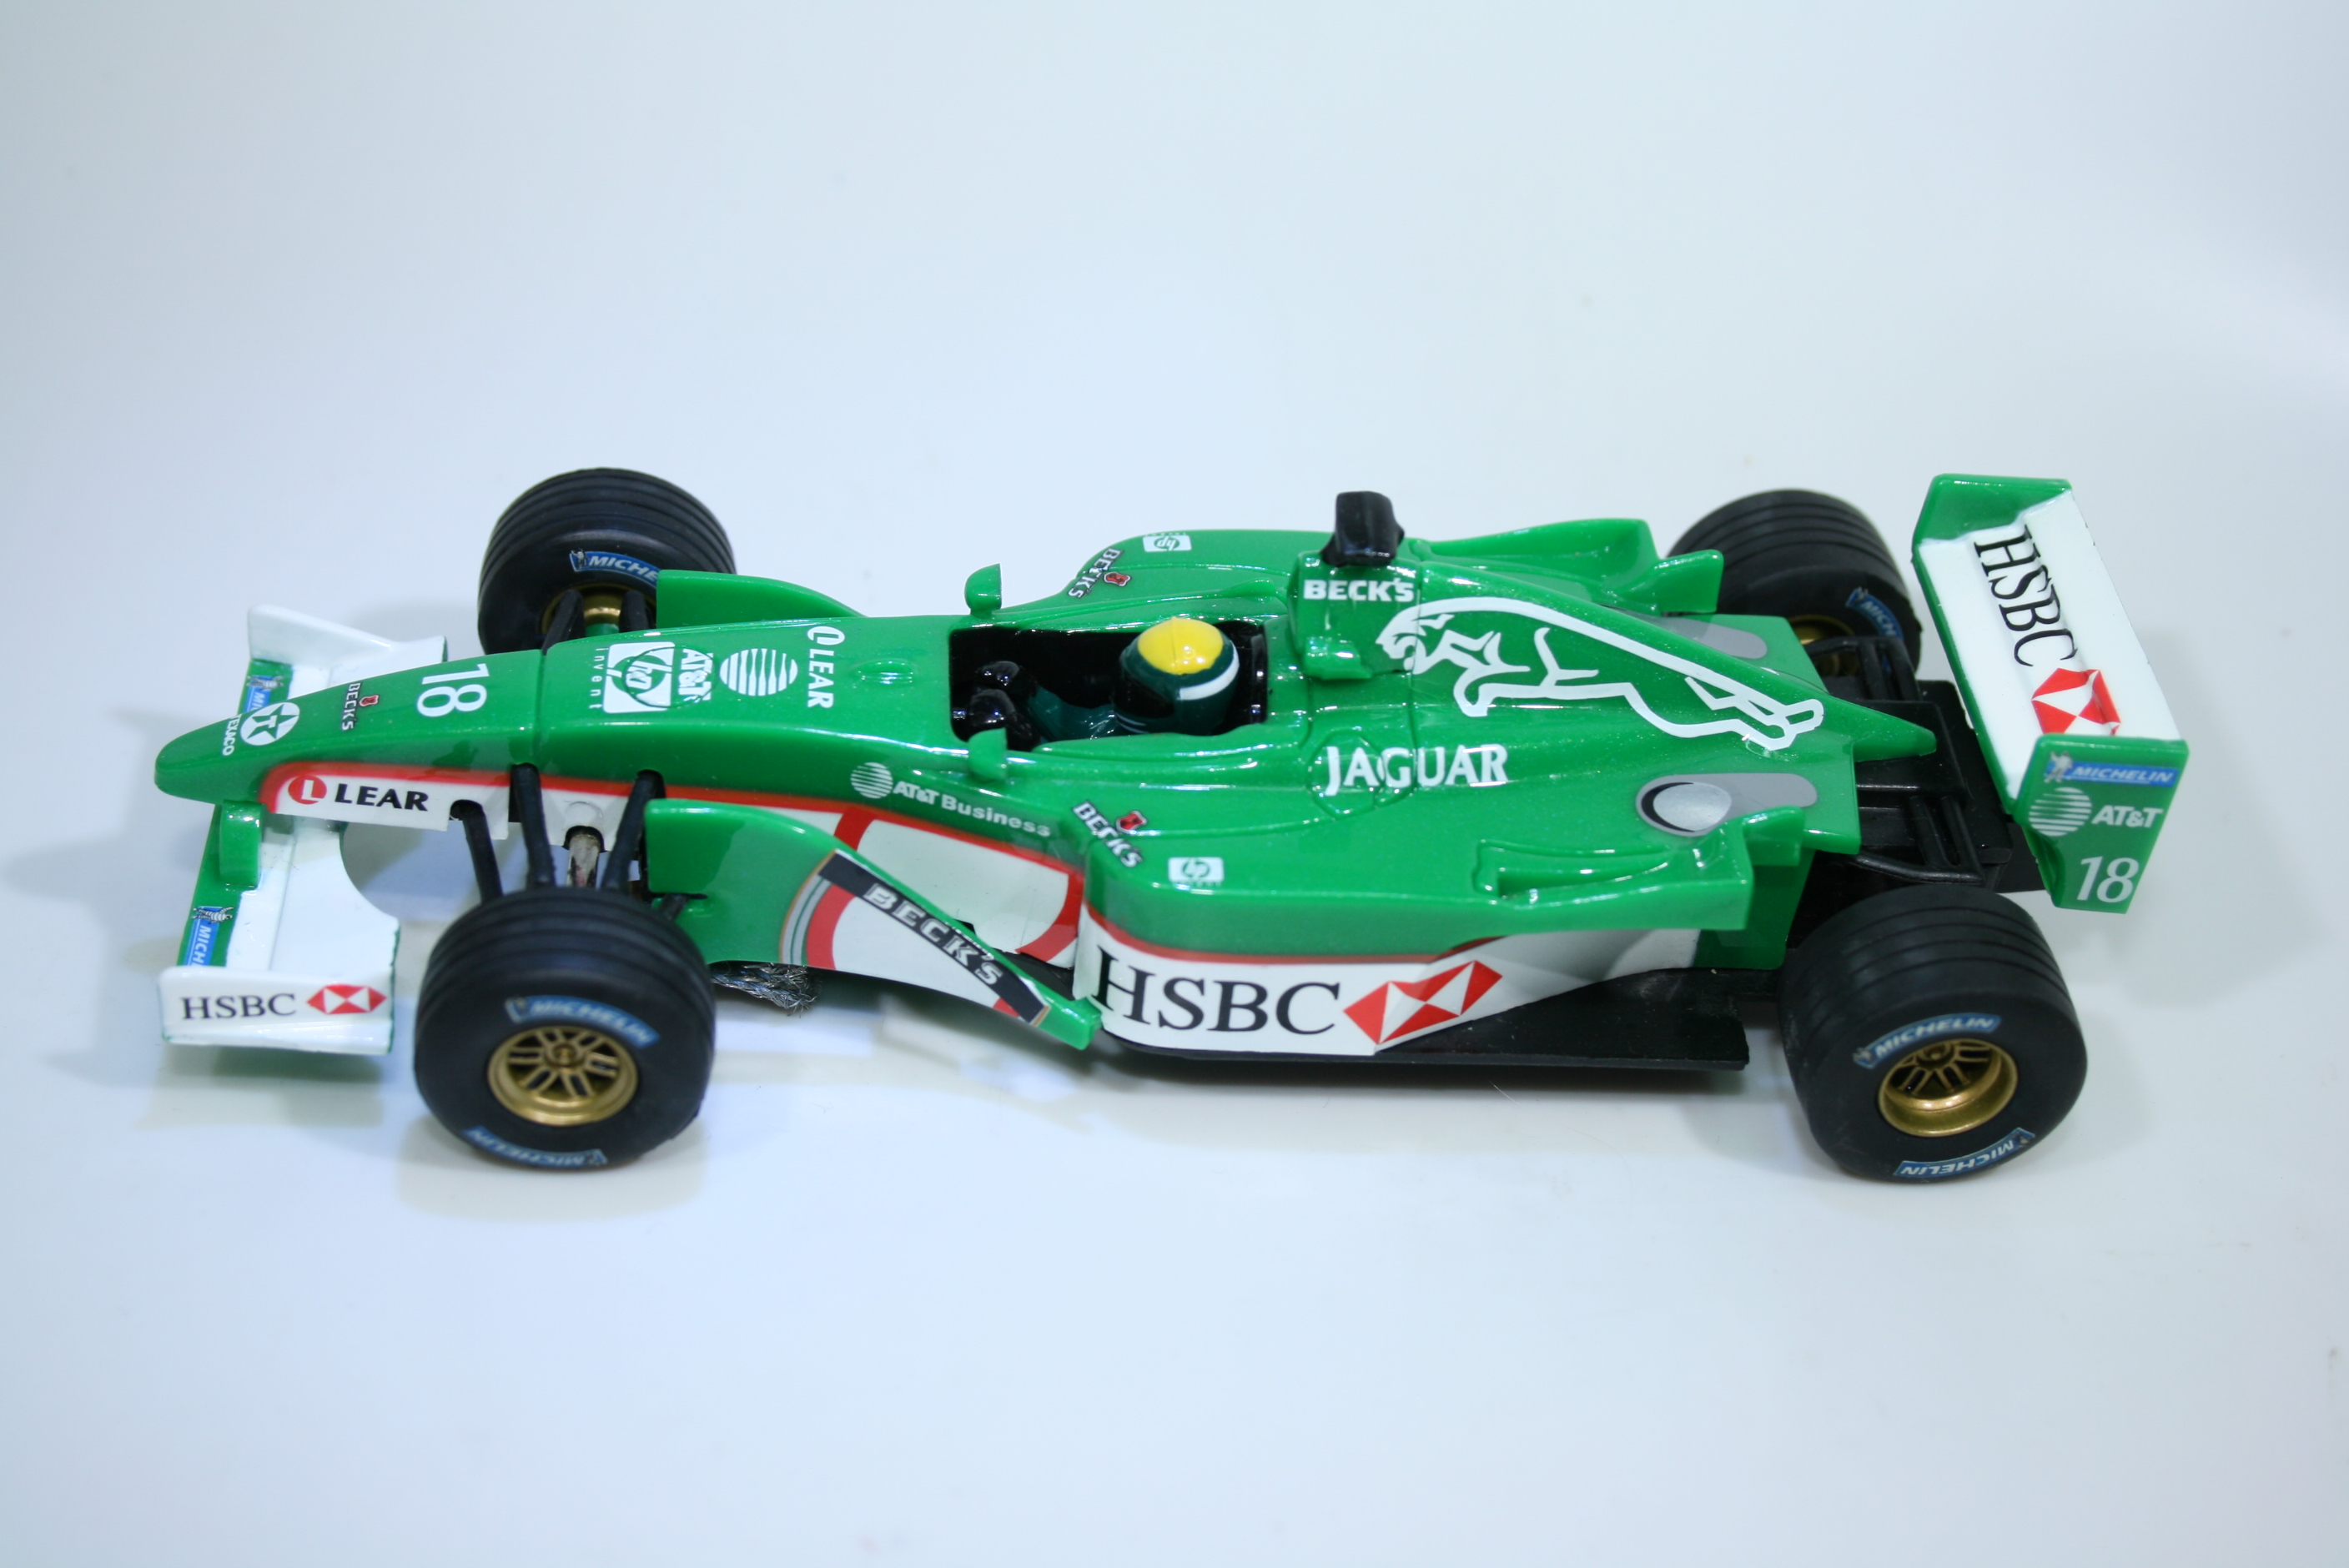 1573 Jaguar R2 2002 E Irvine Carrera 25449 Limited Edition 2001 Boxed